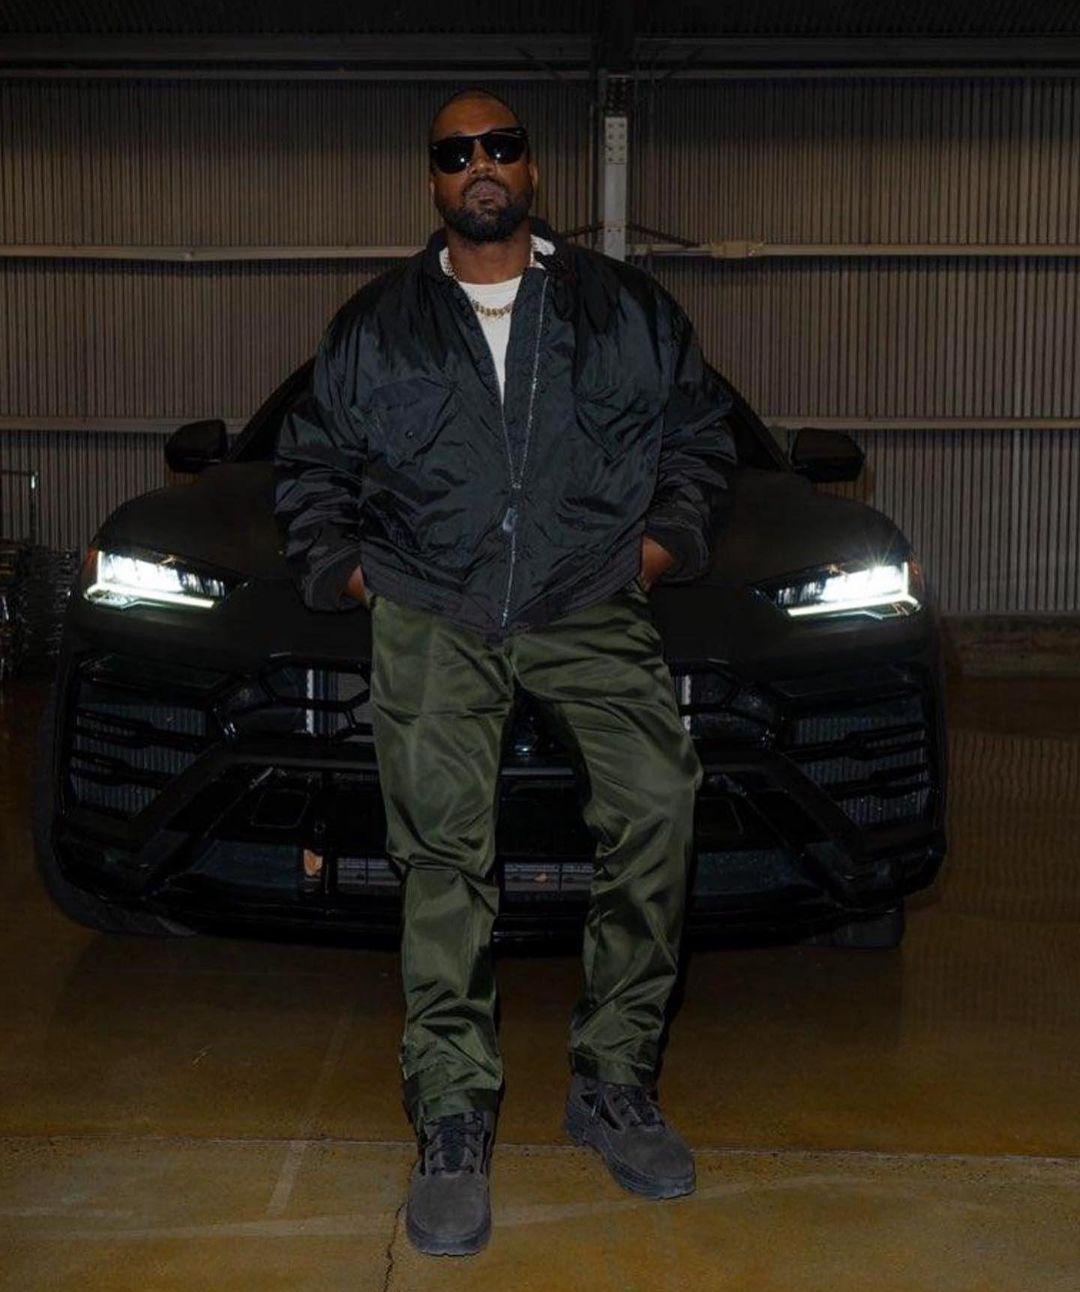 A photo showing Kanye West in a black jacket and green pant.